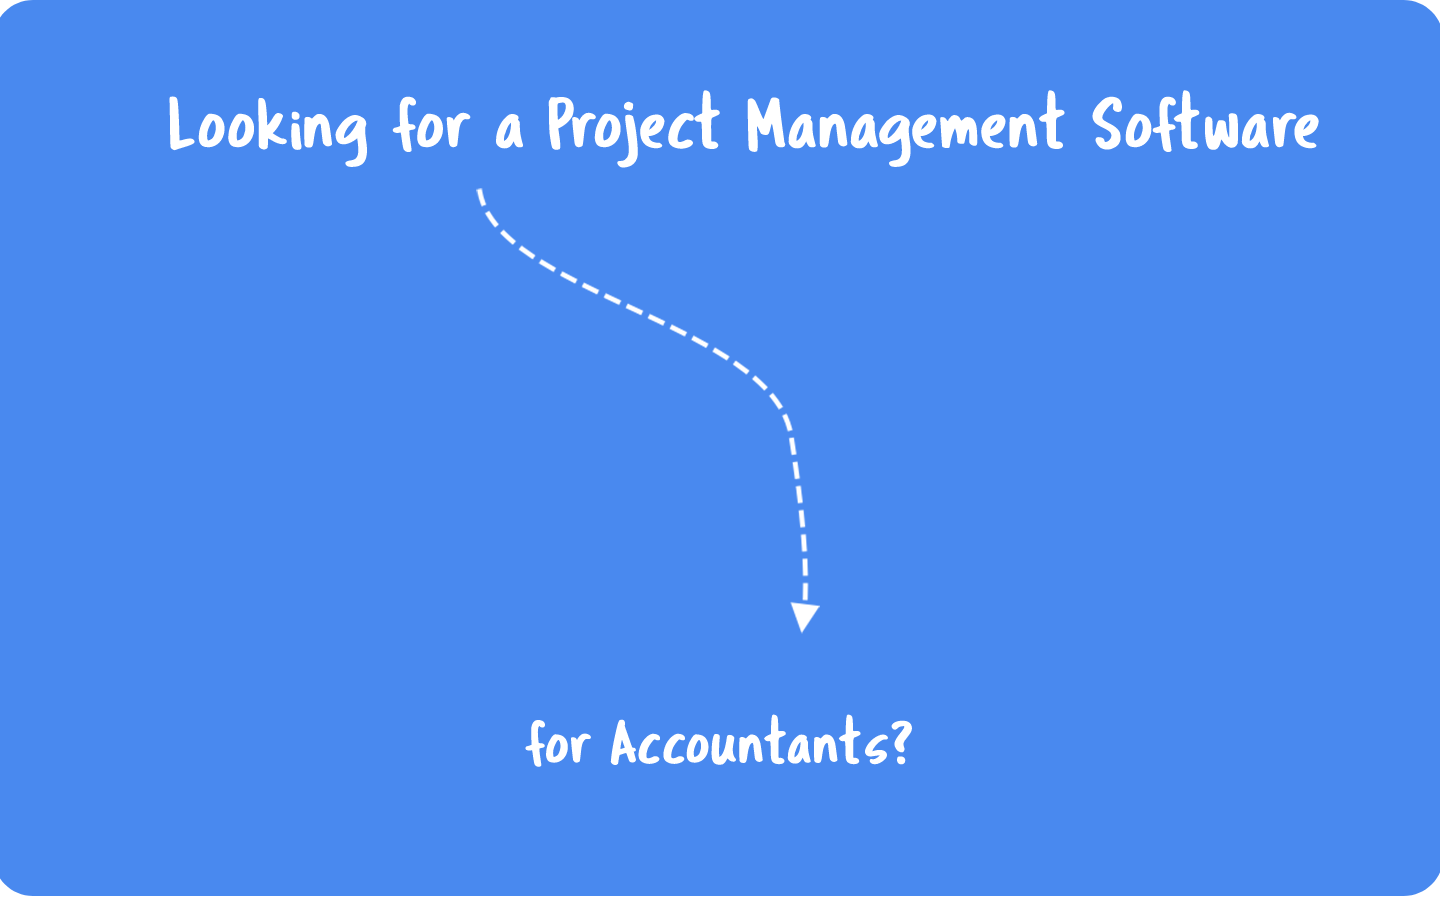 project management software for accountants